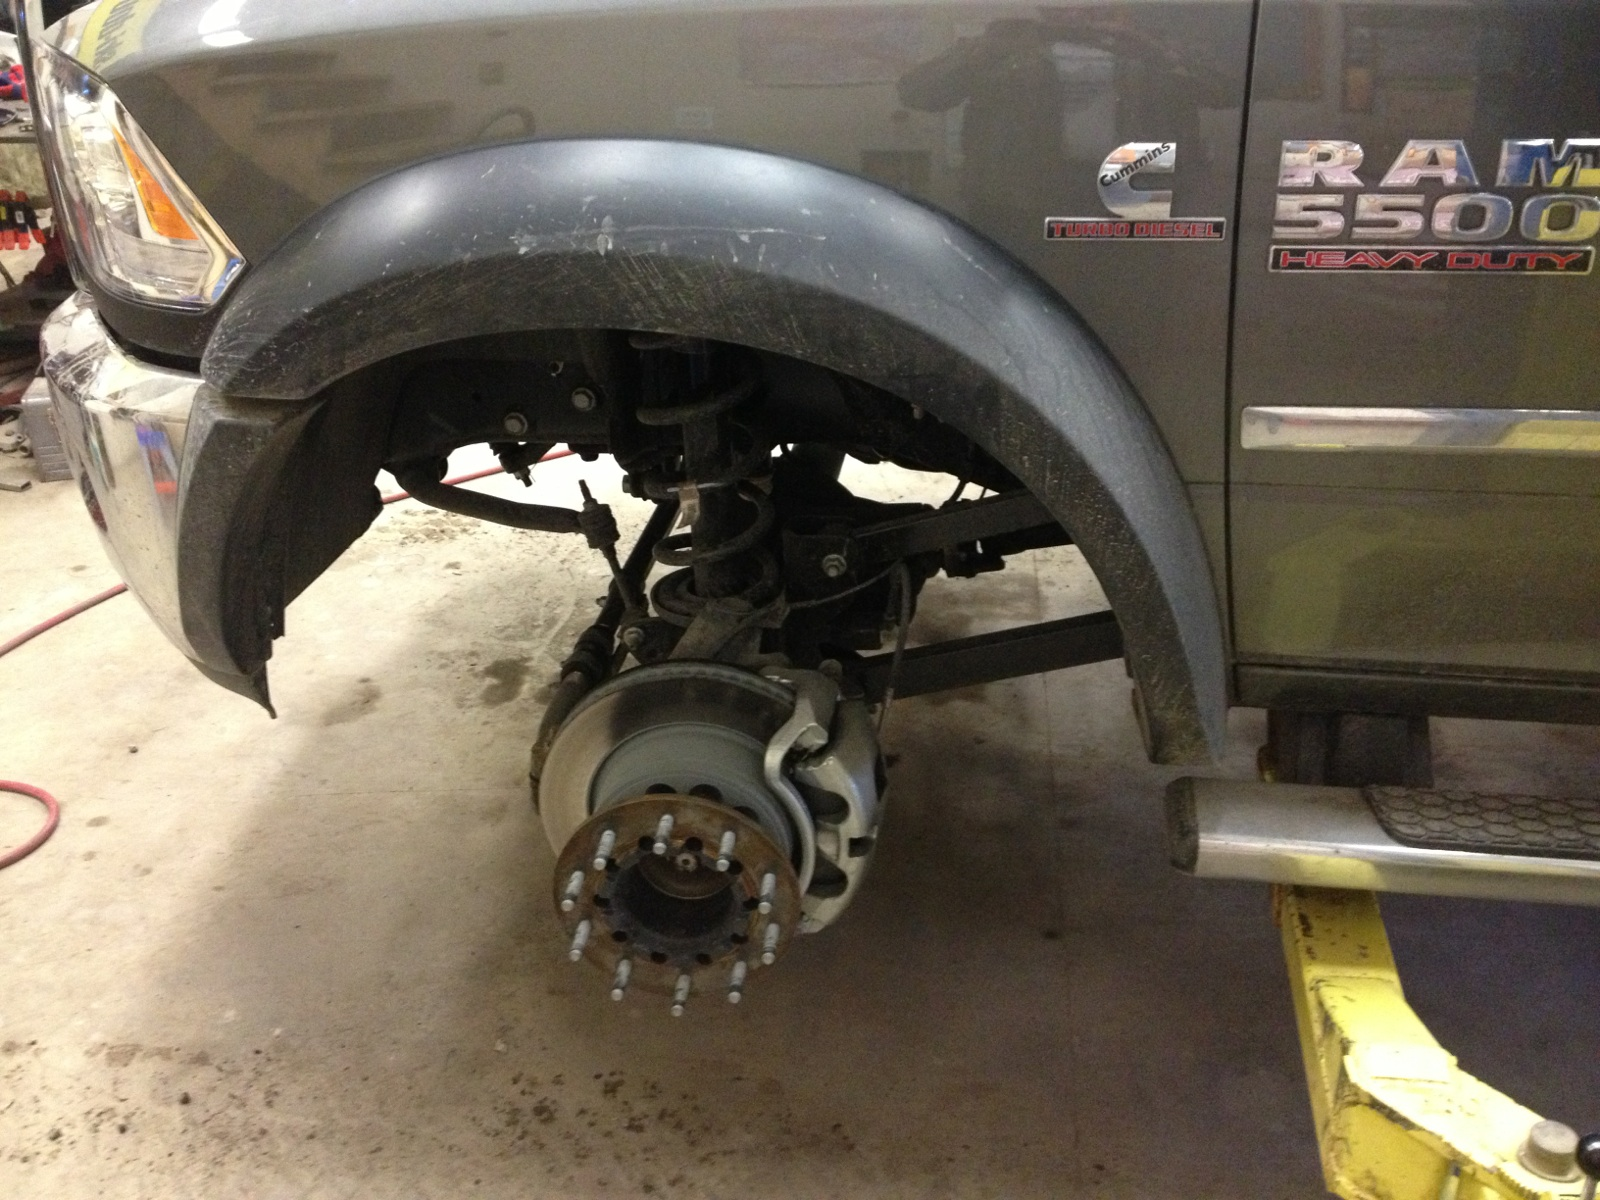 D Srw Pick Up Build Up W Pics Front Axle on Dodge Ram 5500